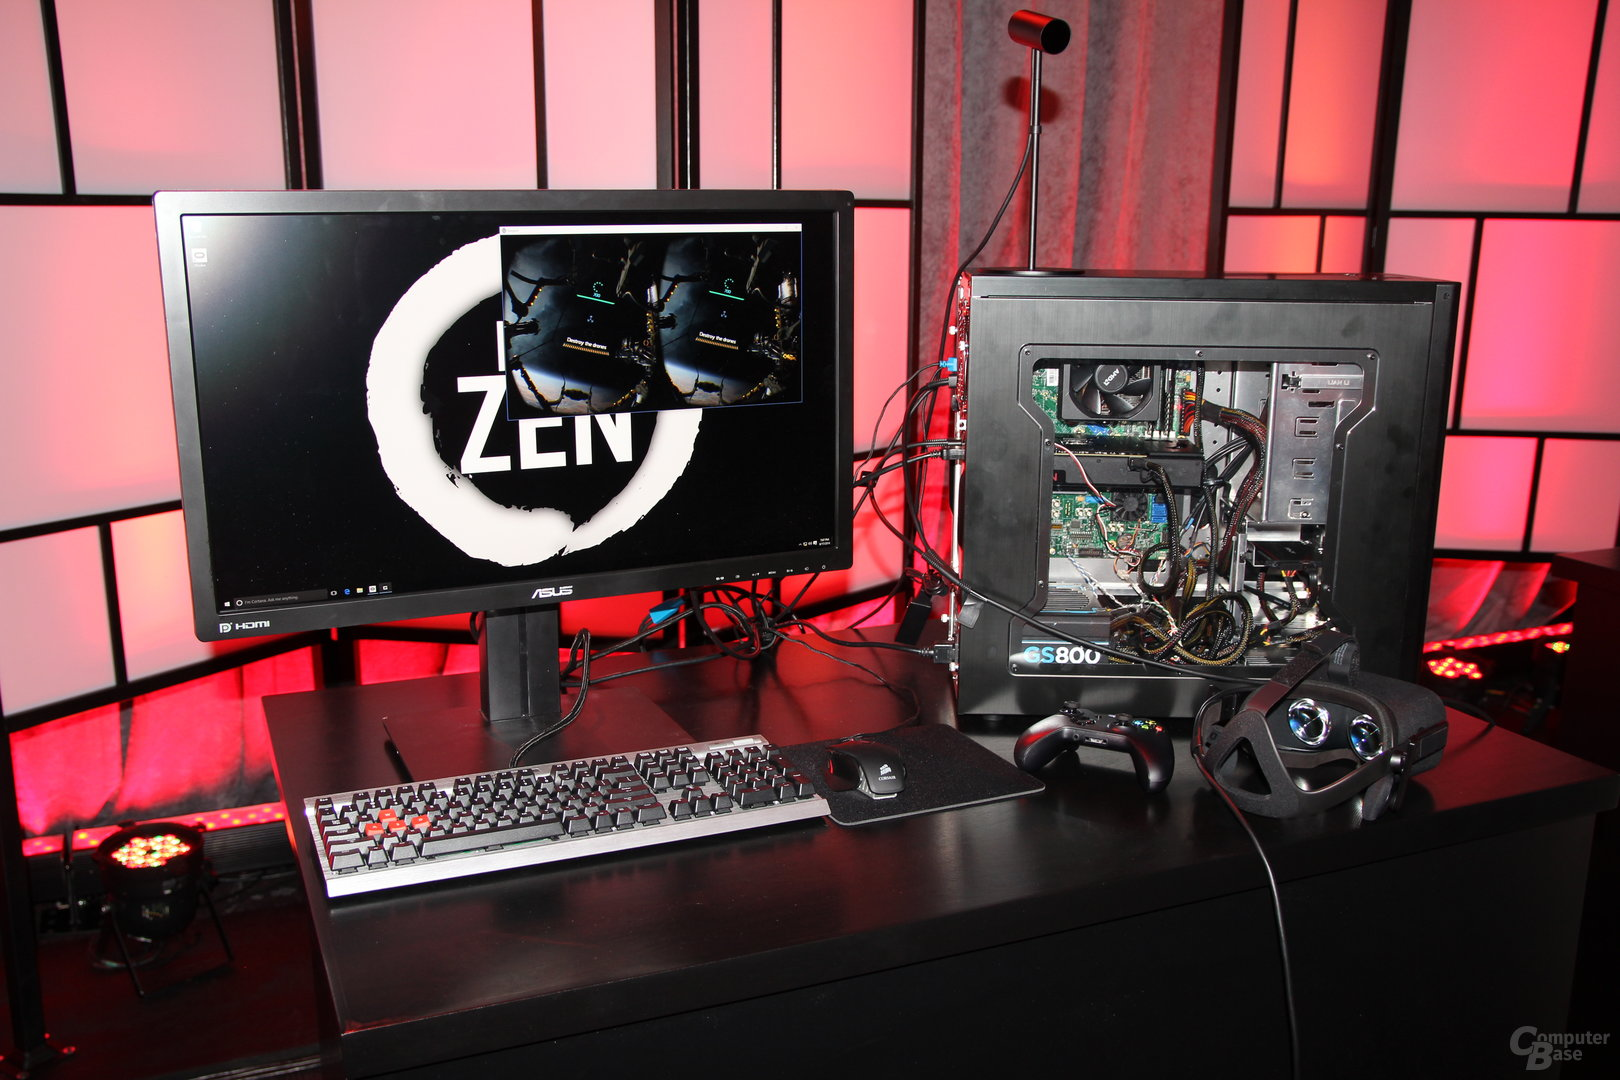 Zen-Demo von AMD (17. August 2016)